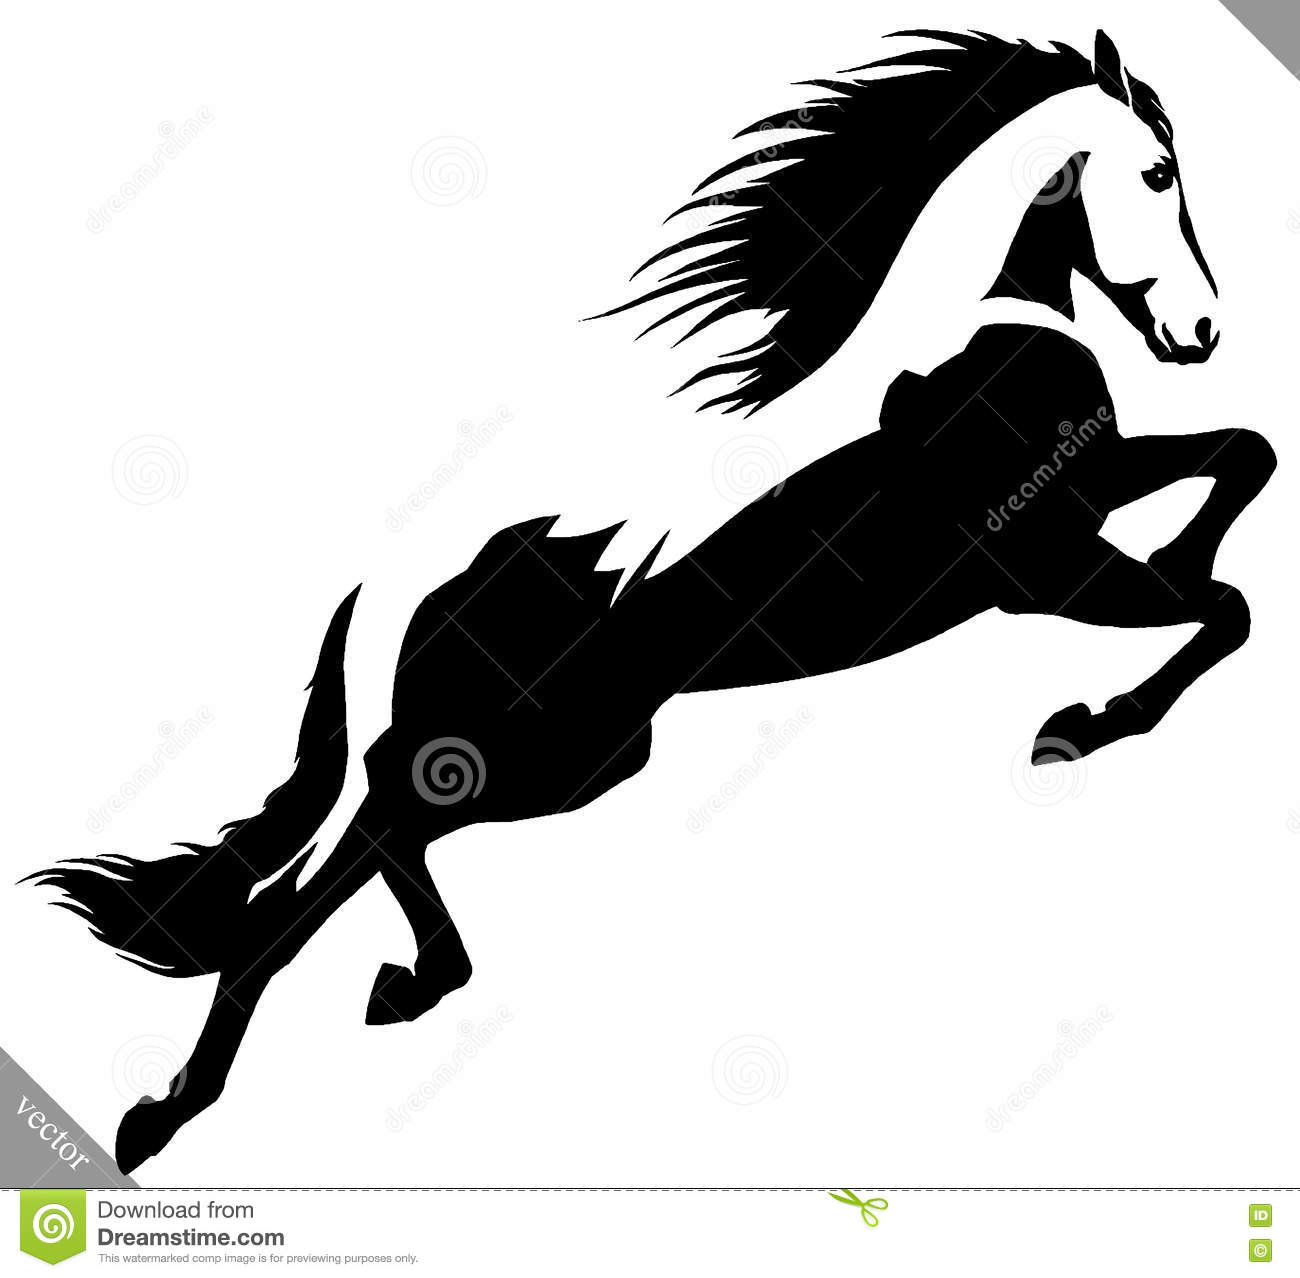 Black And White Linear Paint Draw Horse Vector Illustration Stock Vector Illustration Of Linear Outline 78889605